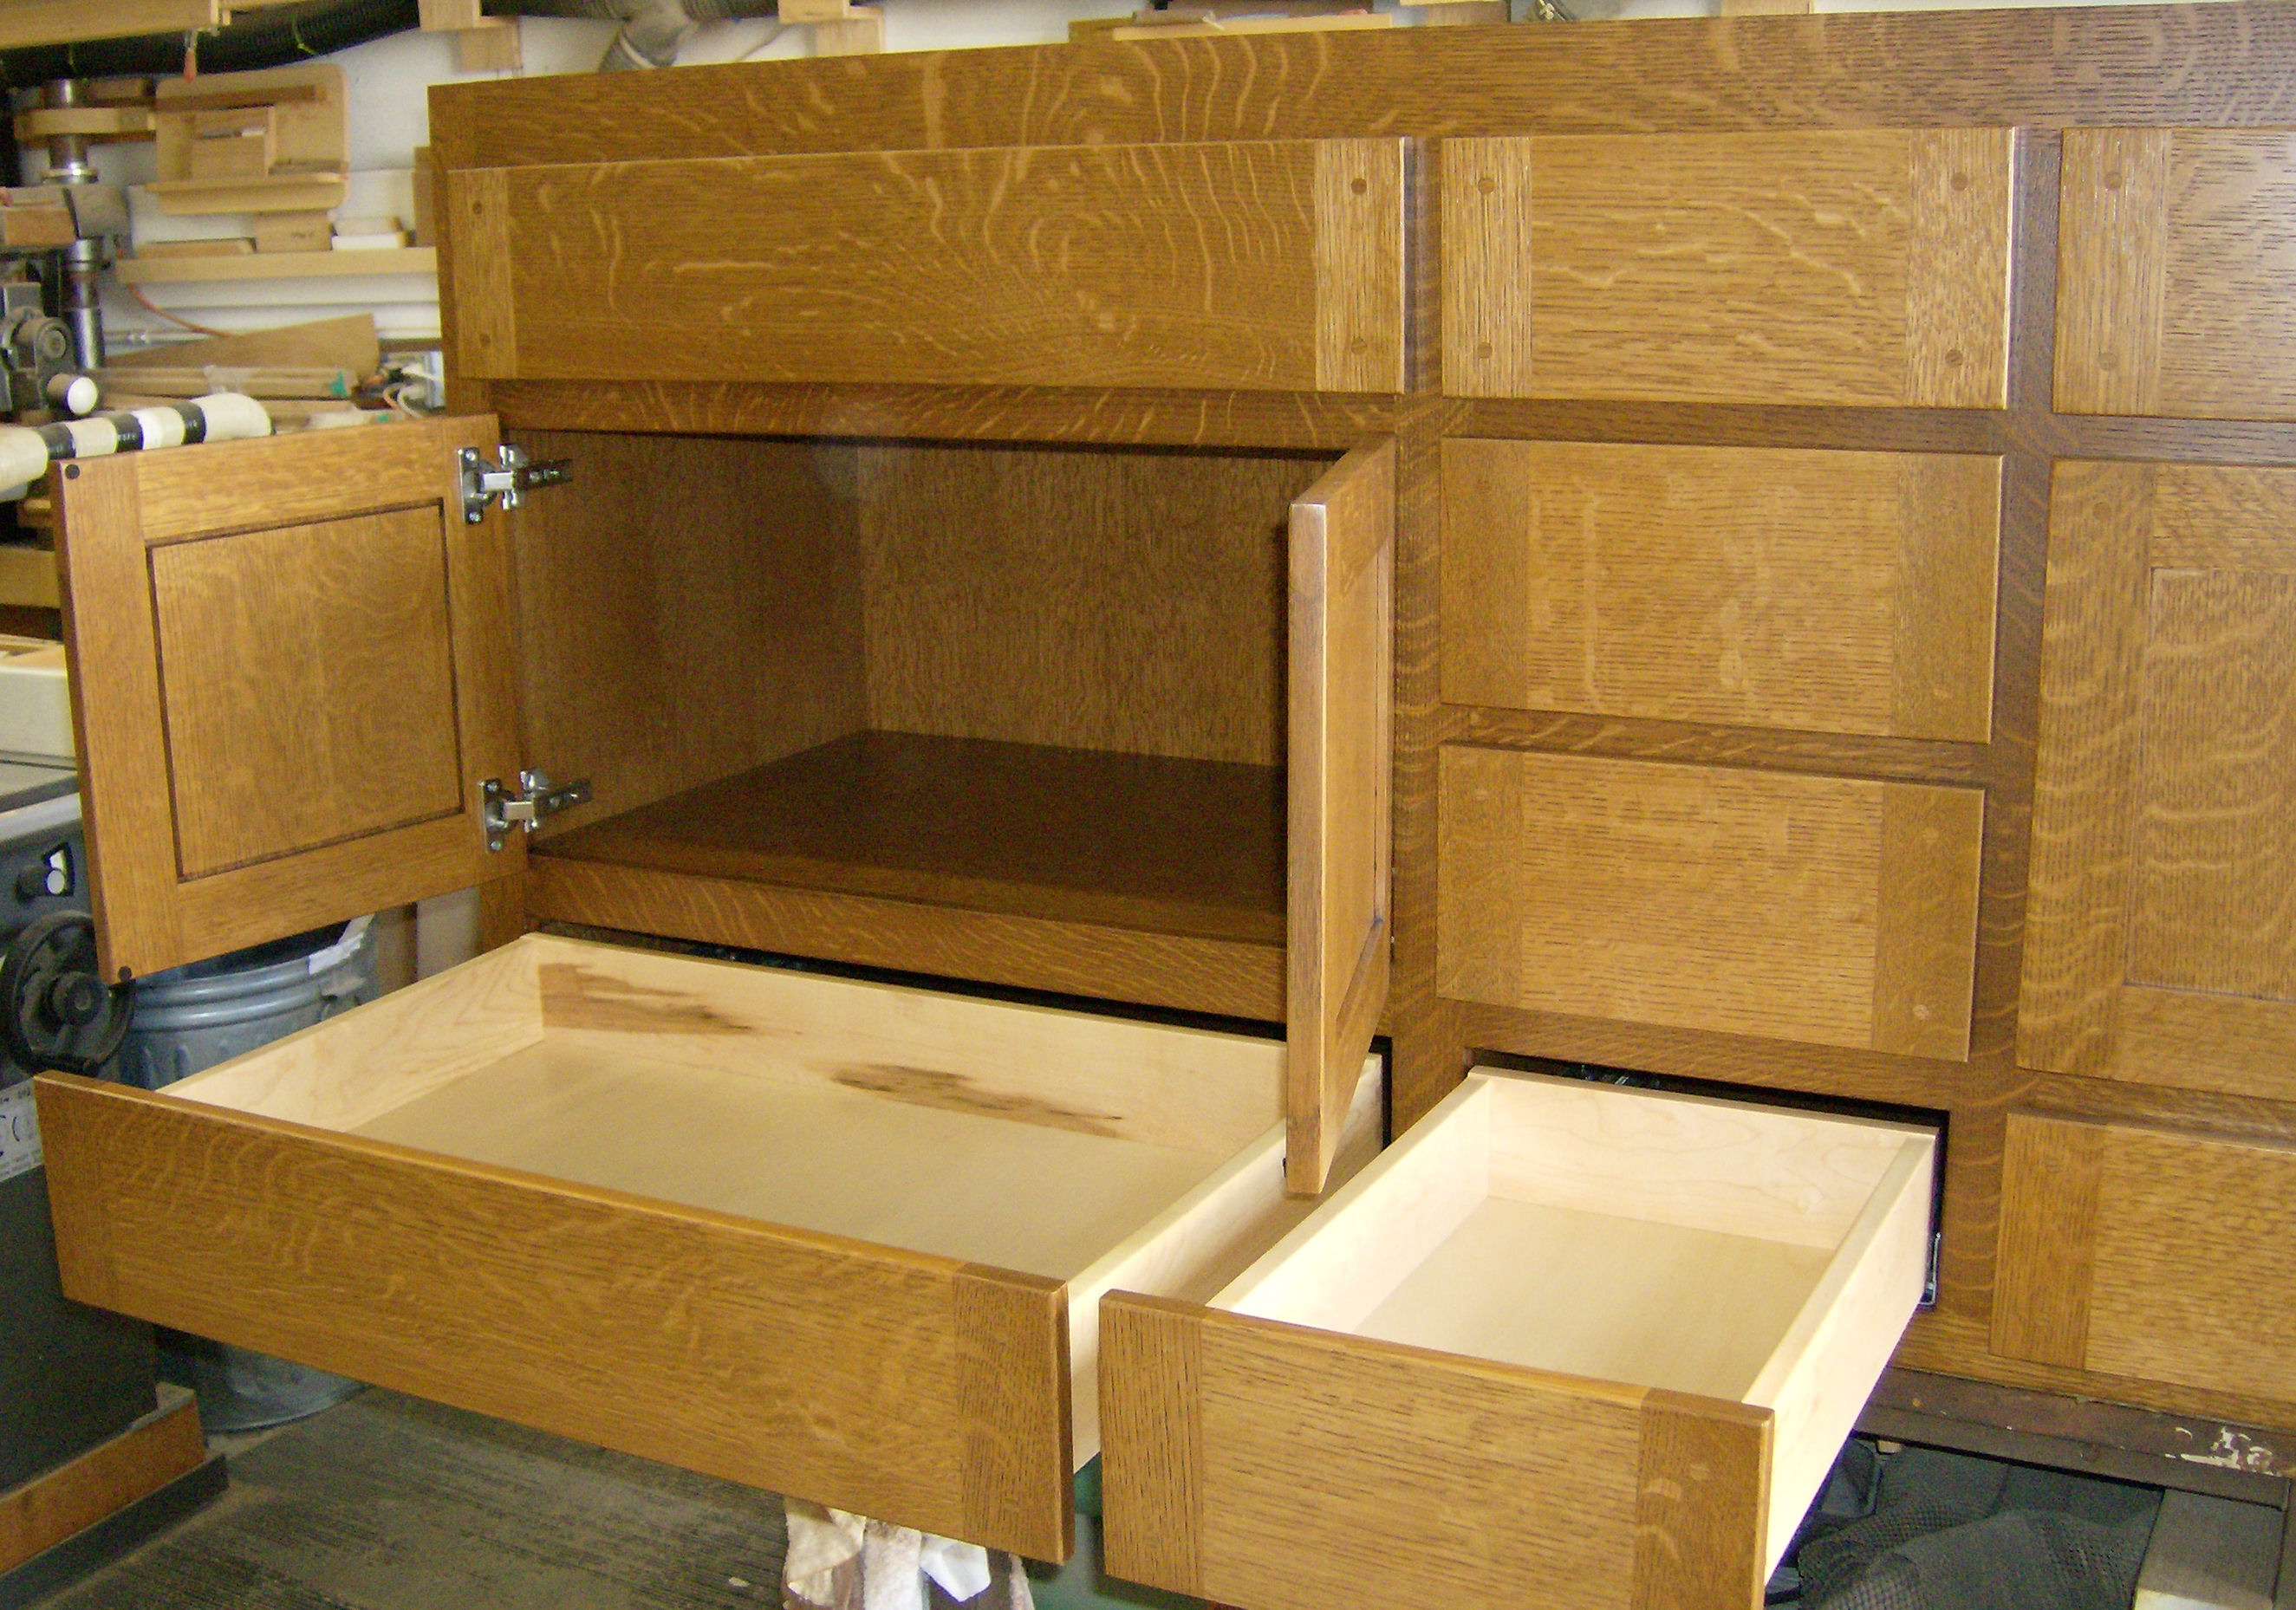 Craftsman style built in cabinets - Custom Furniture Grade Vanity Cabinet In Quarter Sawn White Oak Built To Fit Exact Opening And Furnished Pre Finished Dovetailed Solid Maple Drawers And